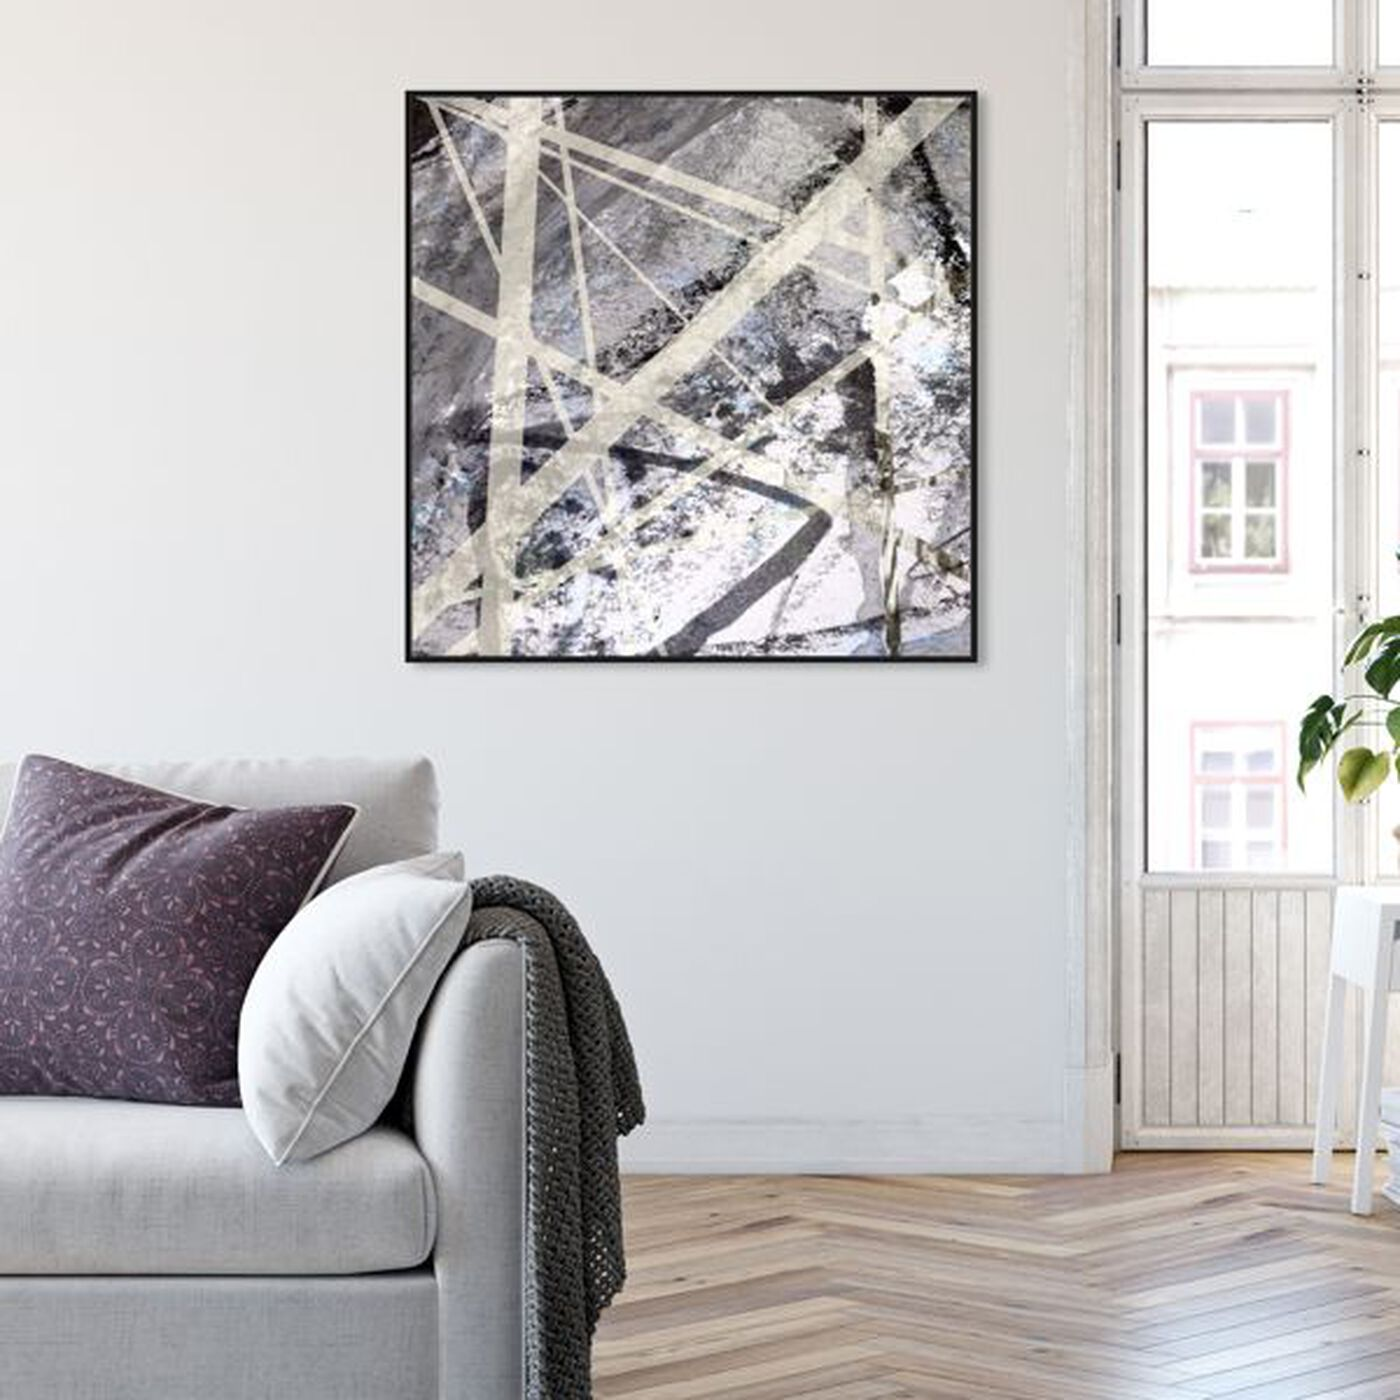 Hanging view of Rien featuring abstract and shapes art.